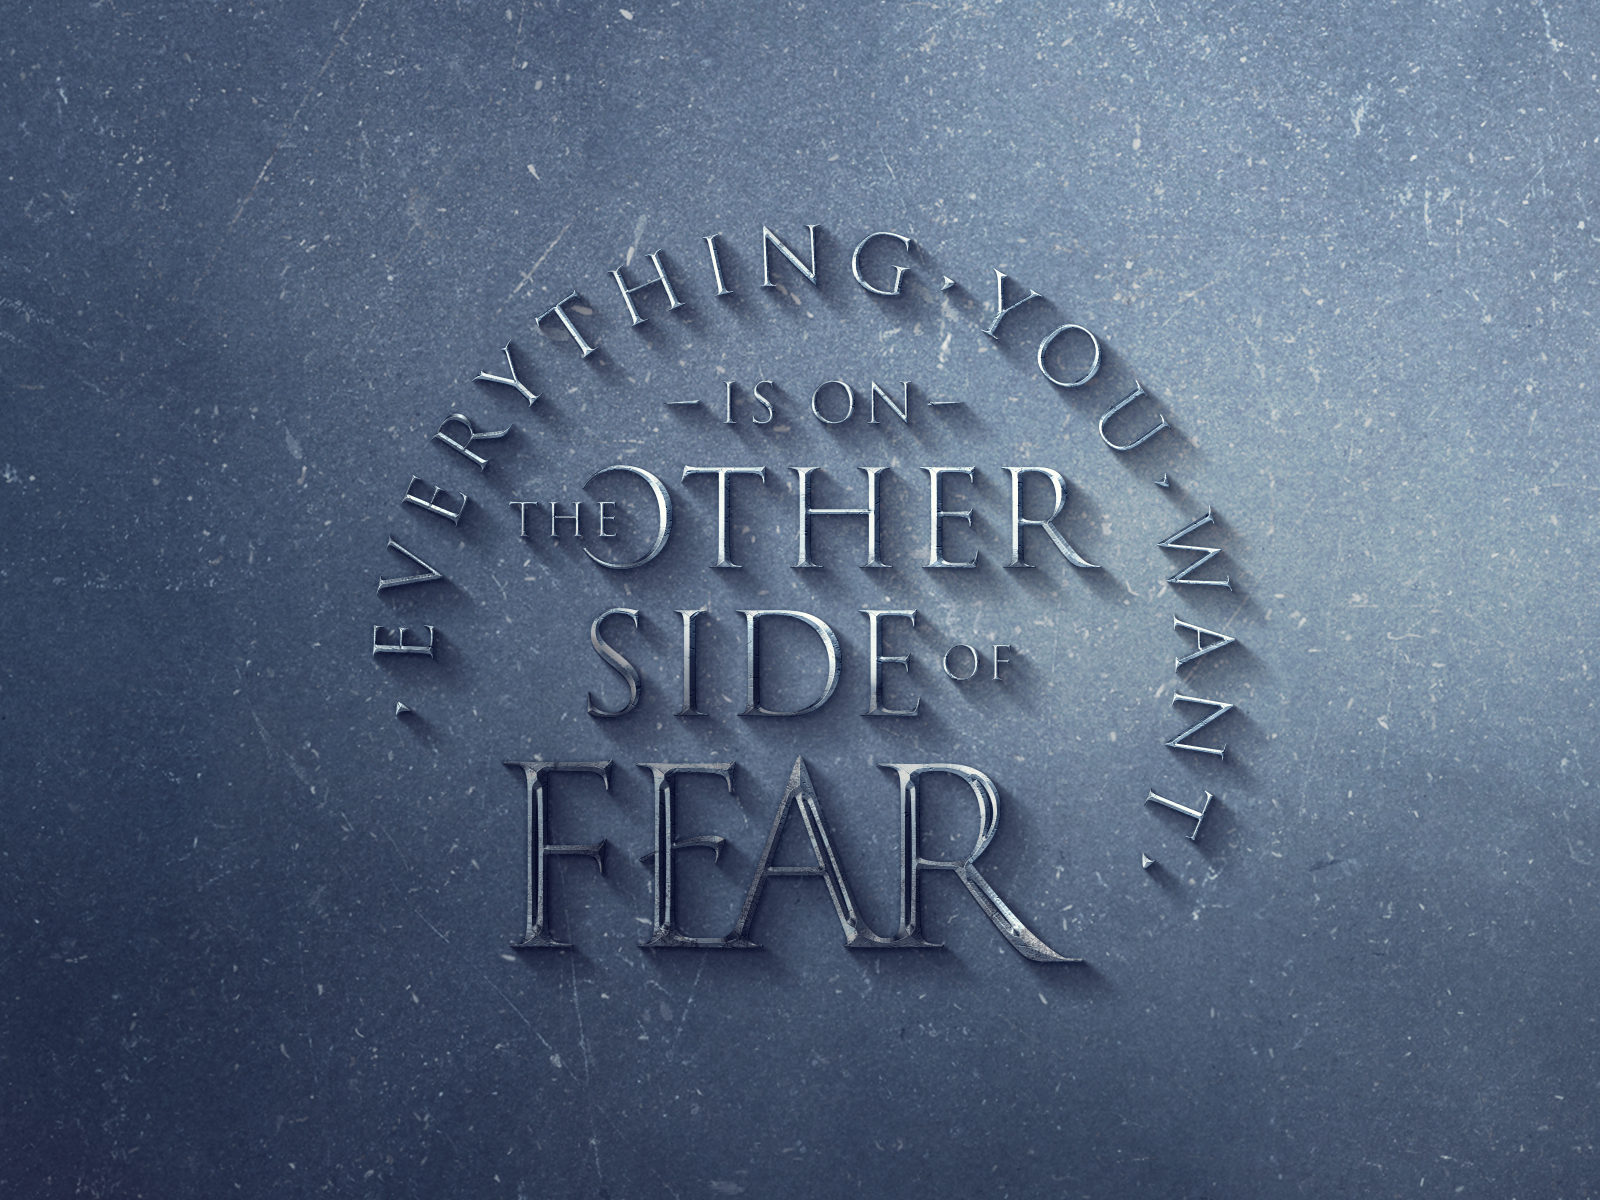 Everything you want is on the other side of fear inspirational quotes quote design typographic design type typography